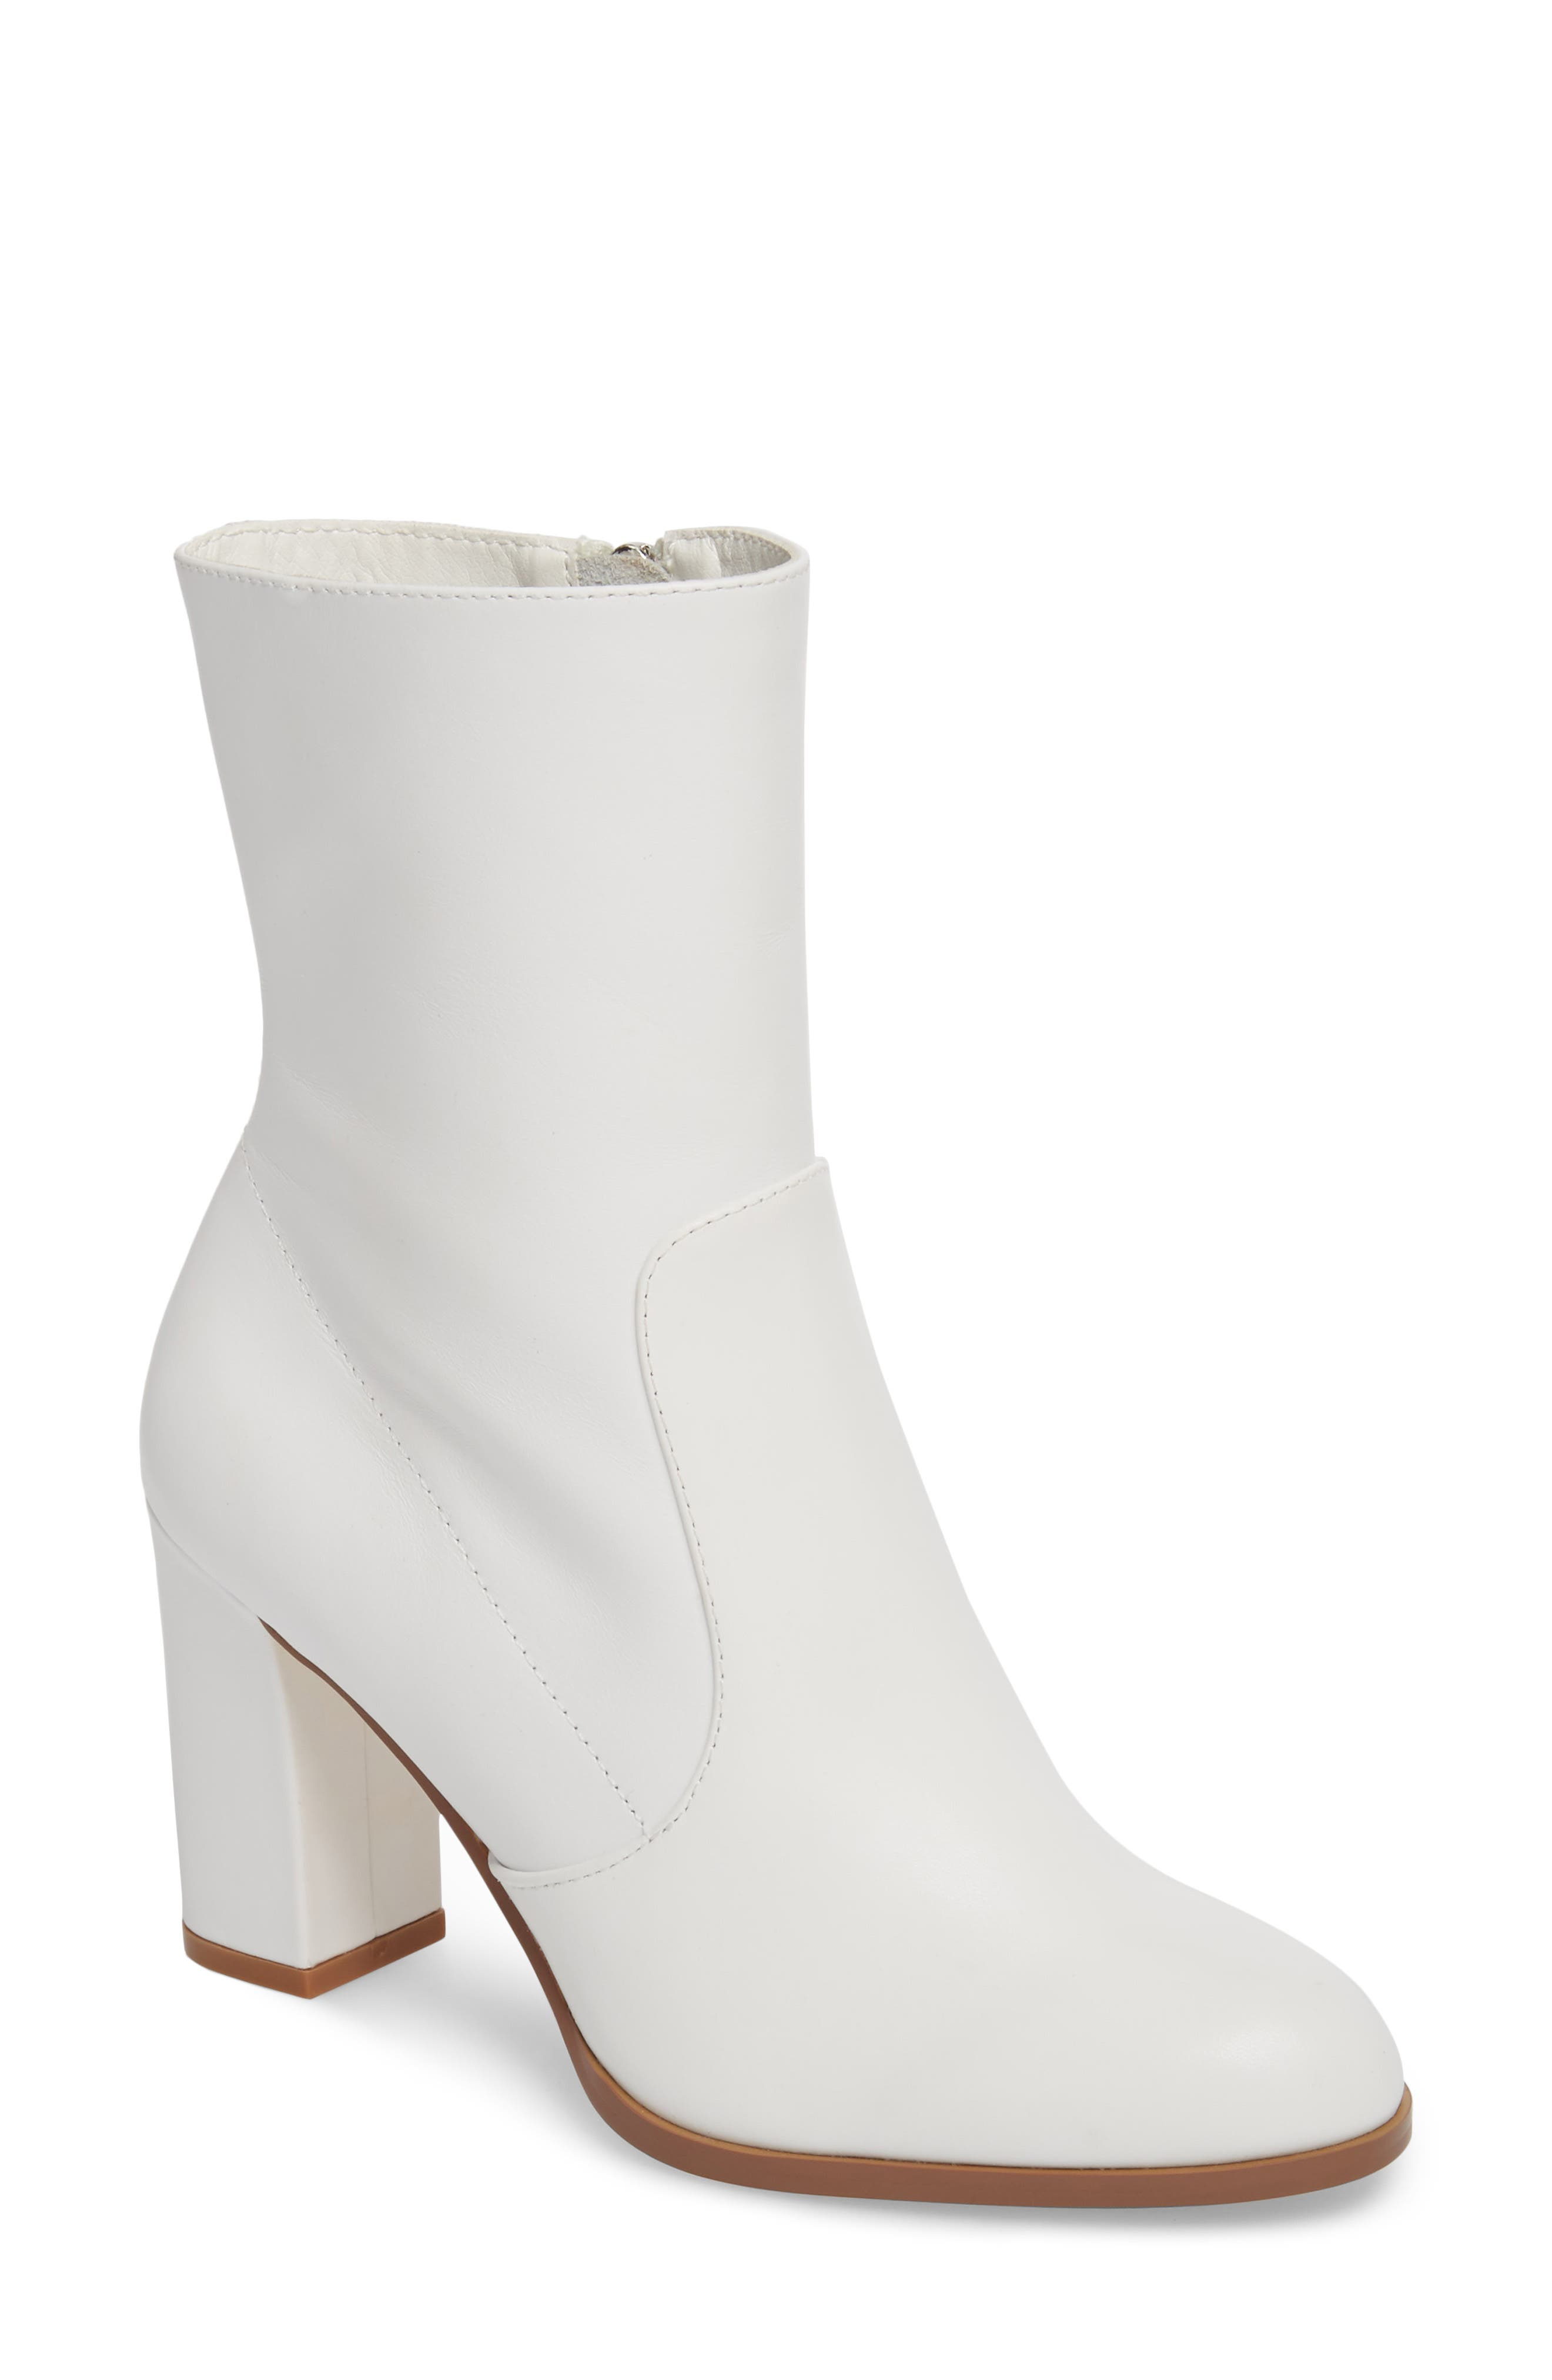 CHINESE LAUNDRY, Craze Bootie, Main thumbnail 1, color, CLOUD LEATHER